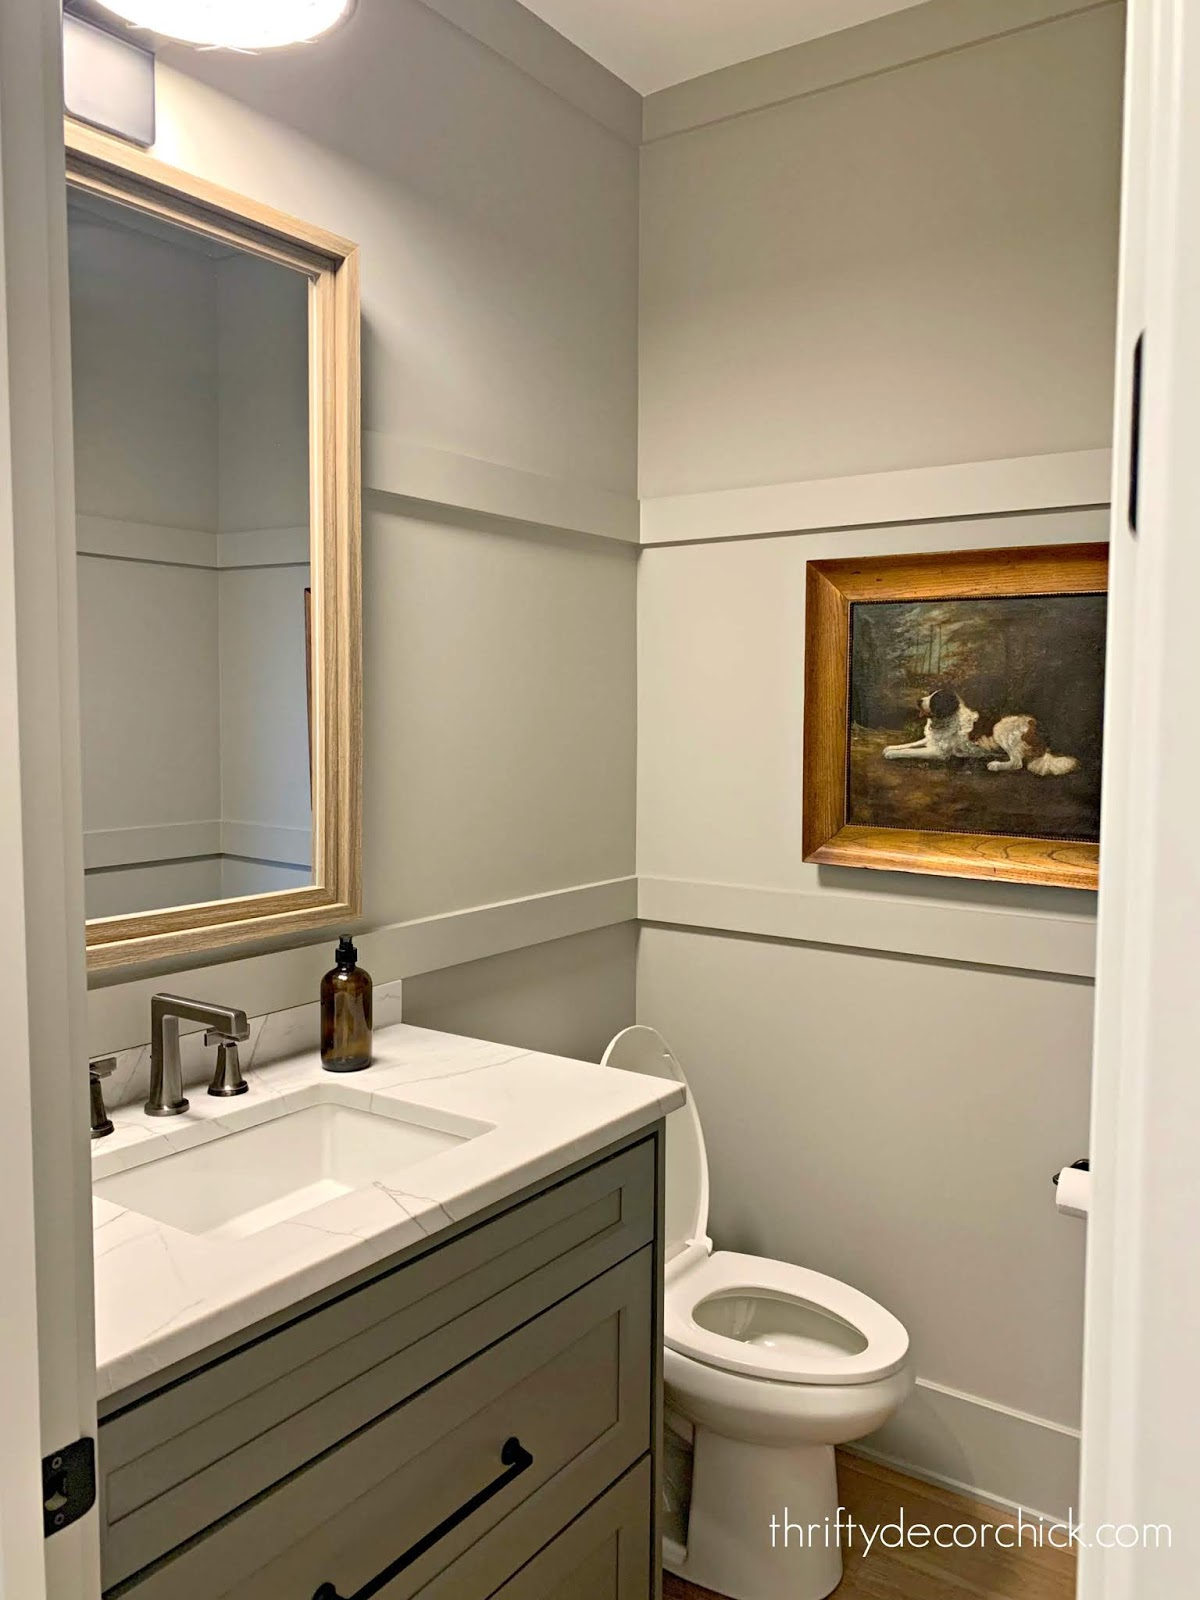 simple trim horizontal trim on walls bathroom